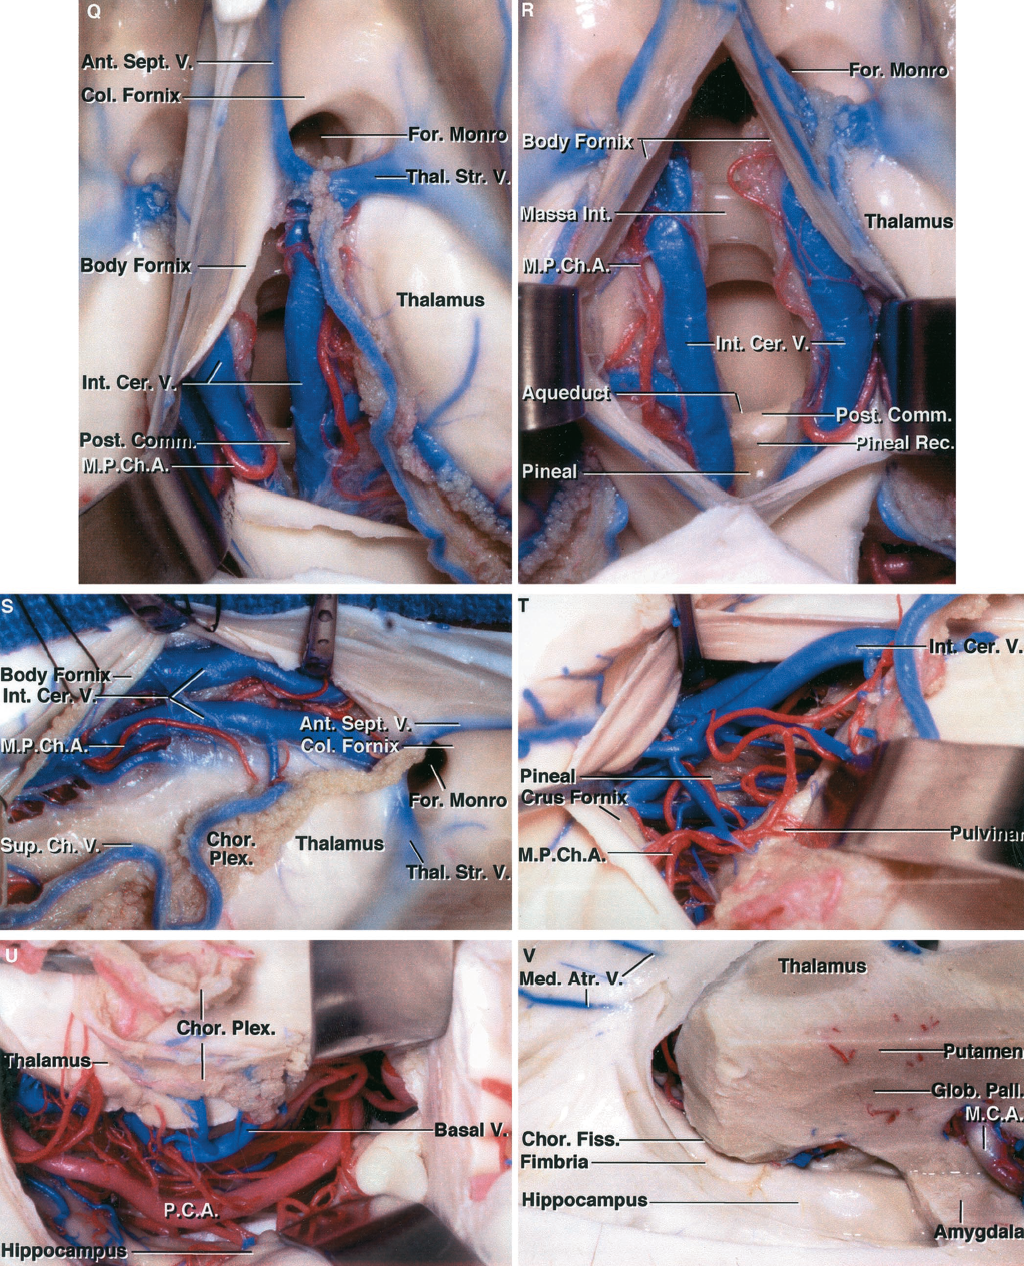 FIGURE 5.3 Q-V. Q, the opening in the choroidal fissure has been extended back to the area above the posterior commissure by dividing the tenia fornix. The choroid plexus is not disturbed on the thalamic side of the choroidal fissure. Branches of the medial posterior choroidal artery course with the internal cerebral veins. R, an interforniceal approach, in which the body of the fornix is divided longitudinally in the midline, has been completed. The massa intermedia, aqueduct, posterior commissure, pineal recess, and pineal are exposed. S, superolateral view of the dissection. The velum interpositum, located between the upper and lower layers of tela and in which the internal cerebral veins and medial posterior choroidal arteries course, has been exposed. The lower layer of tela attached to the striae medullaris thalami has not been opened. Both internal cerebral veins are exposed posterior to the foramen of Monro. If a vein at the foramen of Monro is to be sacrificed, it is preferable to sacrifice the anterior septal rather than the thalamostriate vein. T, the exposure has been extended back to the atrium where the choroid fissure has been opened by dividing the tenia fornix along the edge of the crus of the fornix. The medial posterior choroidal arteries pass along the side of the pineal and through the quadrigeminal cistern to reach the roof of the third ventricle. U, the opening in the choroidal fissure has been extended to the temporal horn. The choroidal fissure has been opened by dividing the tenia on the edge of the fimbria of the fornix to expose the posterior cerebral artery and basal veins. The choroid plexus remains attached to the thalamus. V, the choroid plexus in the right lateral ventricle has been removed. The medial atrial vein drains into the internal cerebral veins. The amygdala is exposed below the globus pallidus and just behind the middle cerebral artery coursing in the sylvian fissure. The amygdala forms the anterior wall and anterior part o